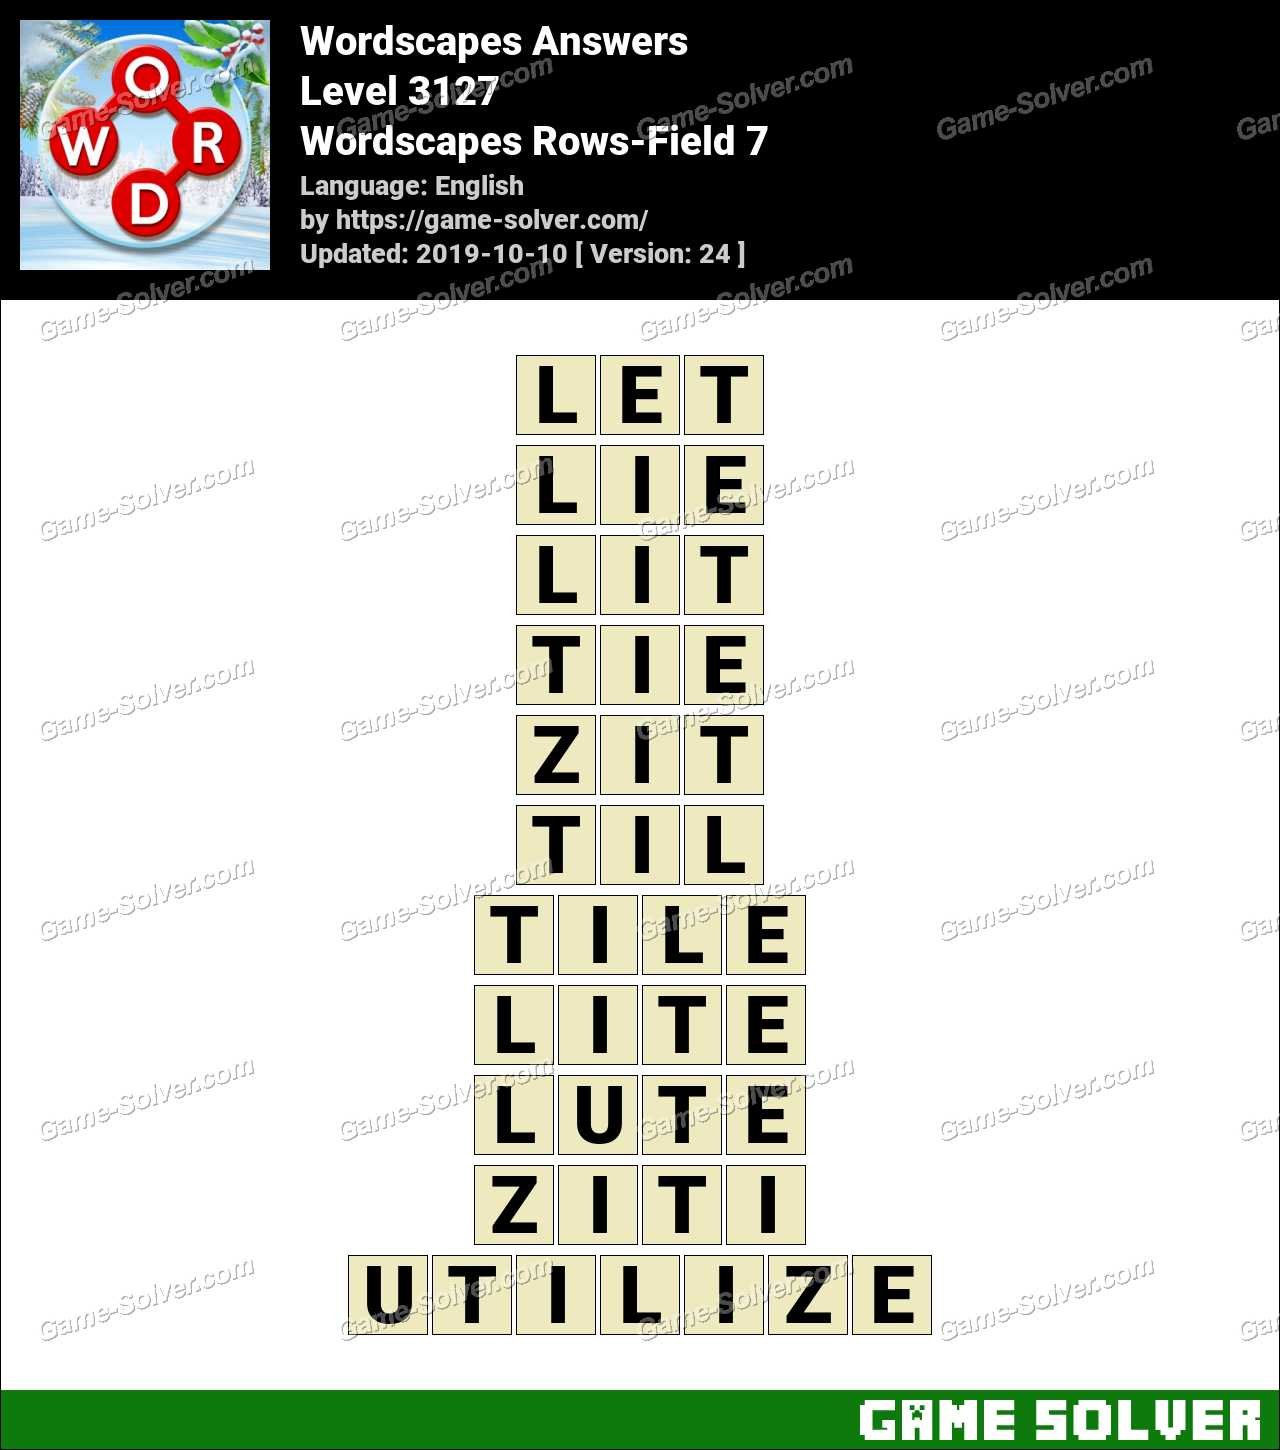 Wordscapes Rows-Field 7 Answers